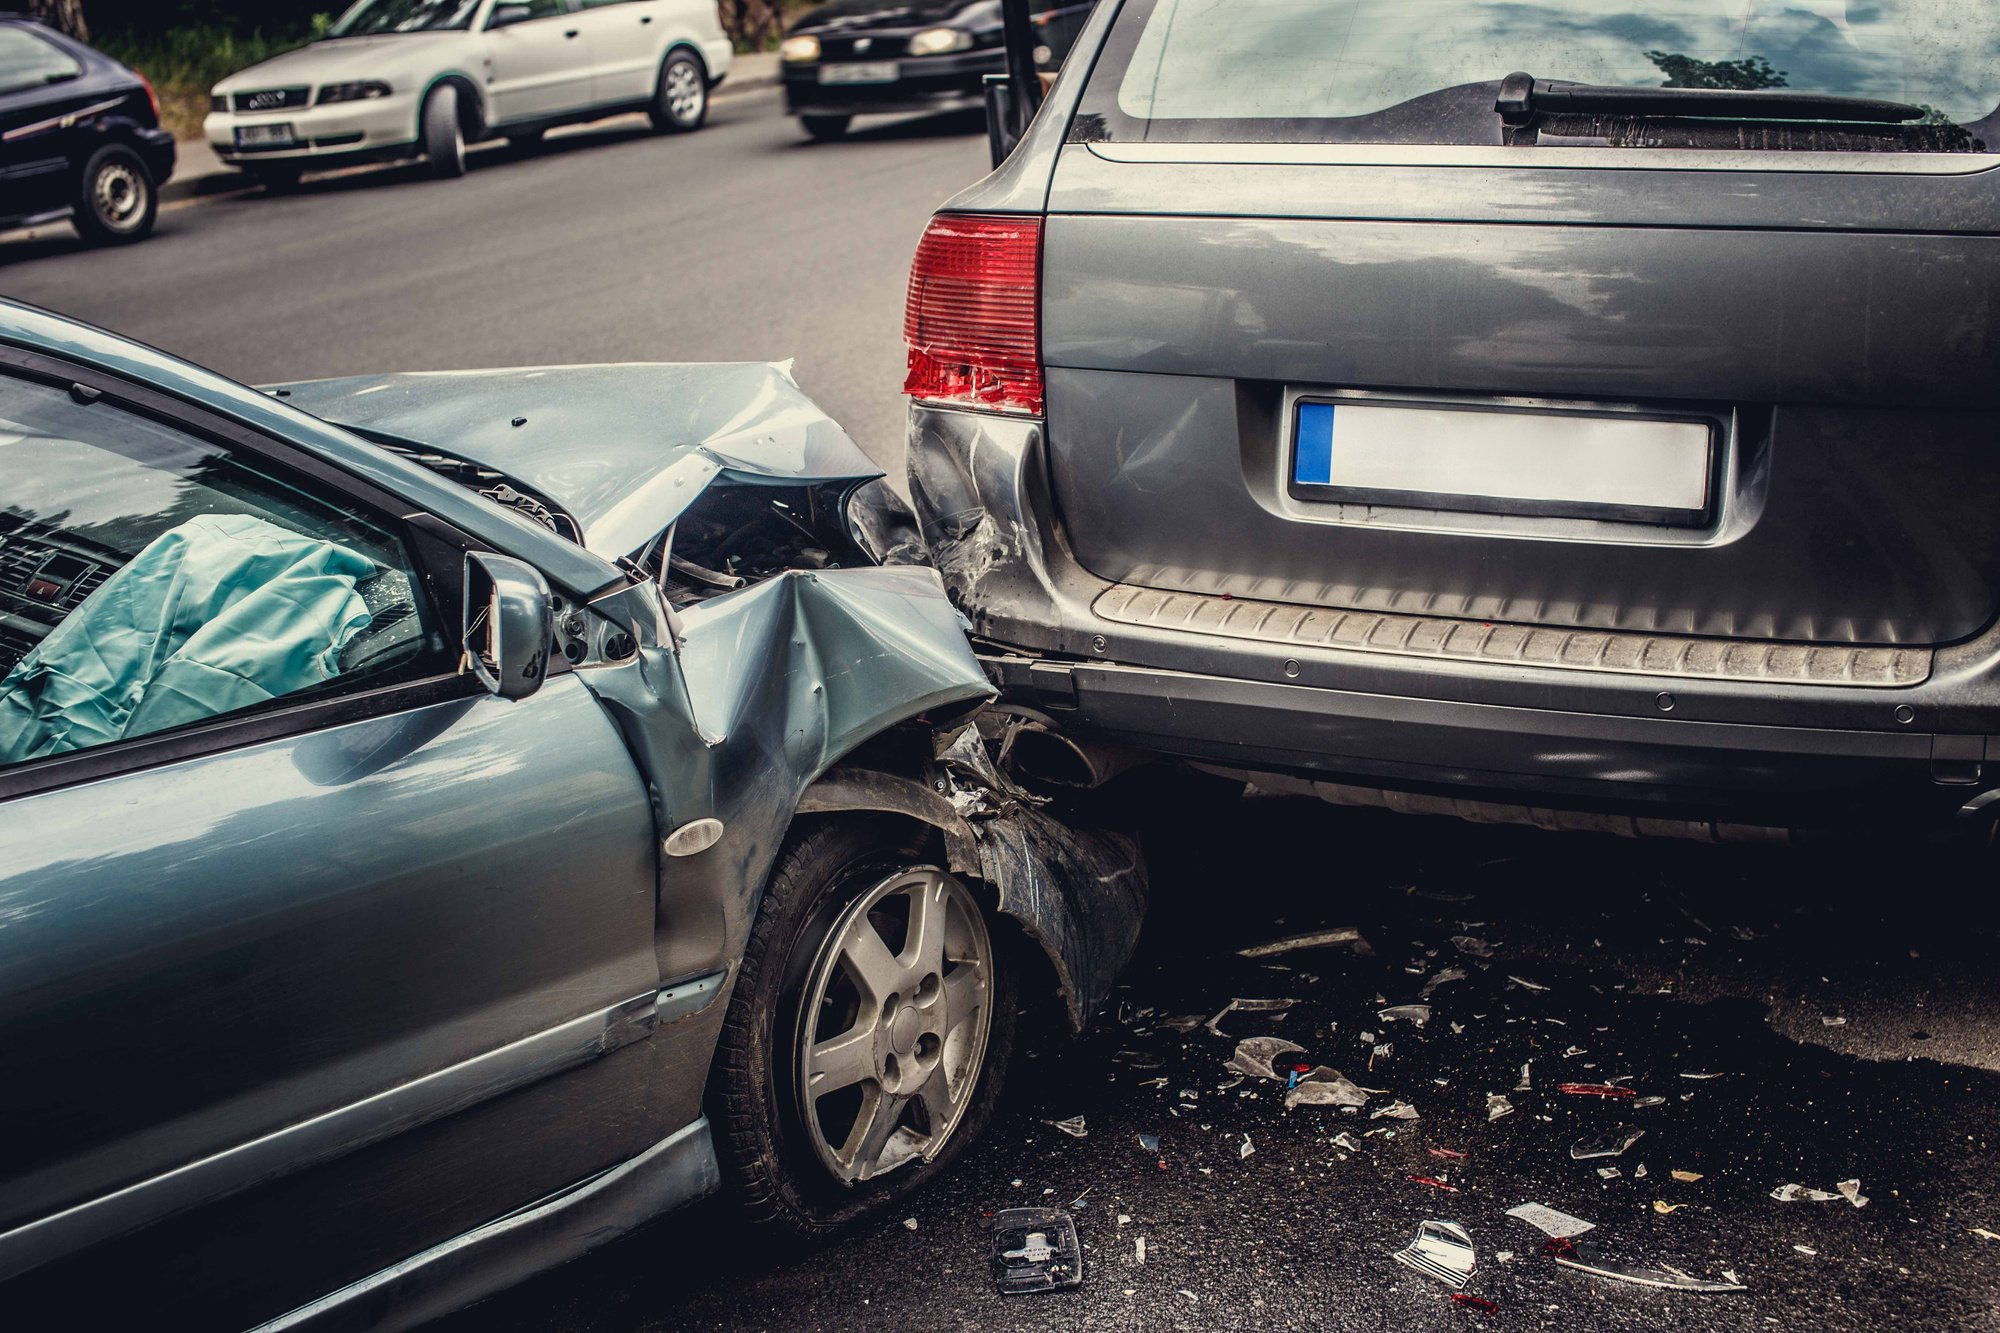 Totaled Car Insurance Payout How Much Should You Expect